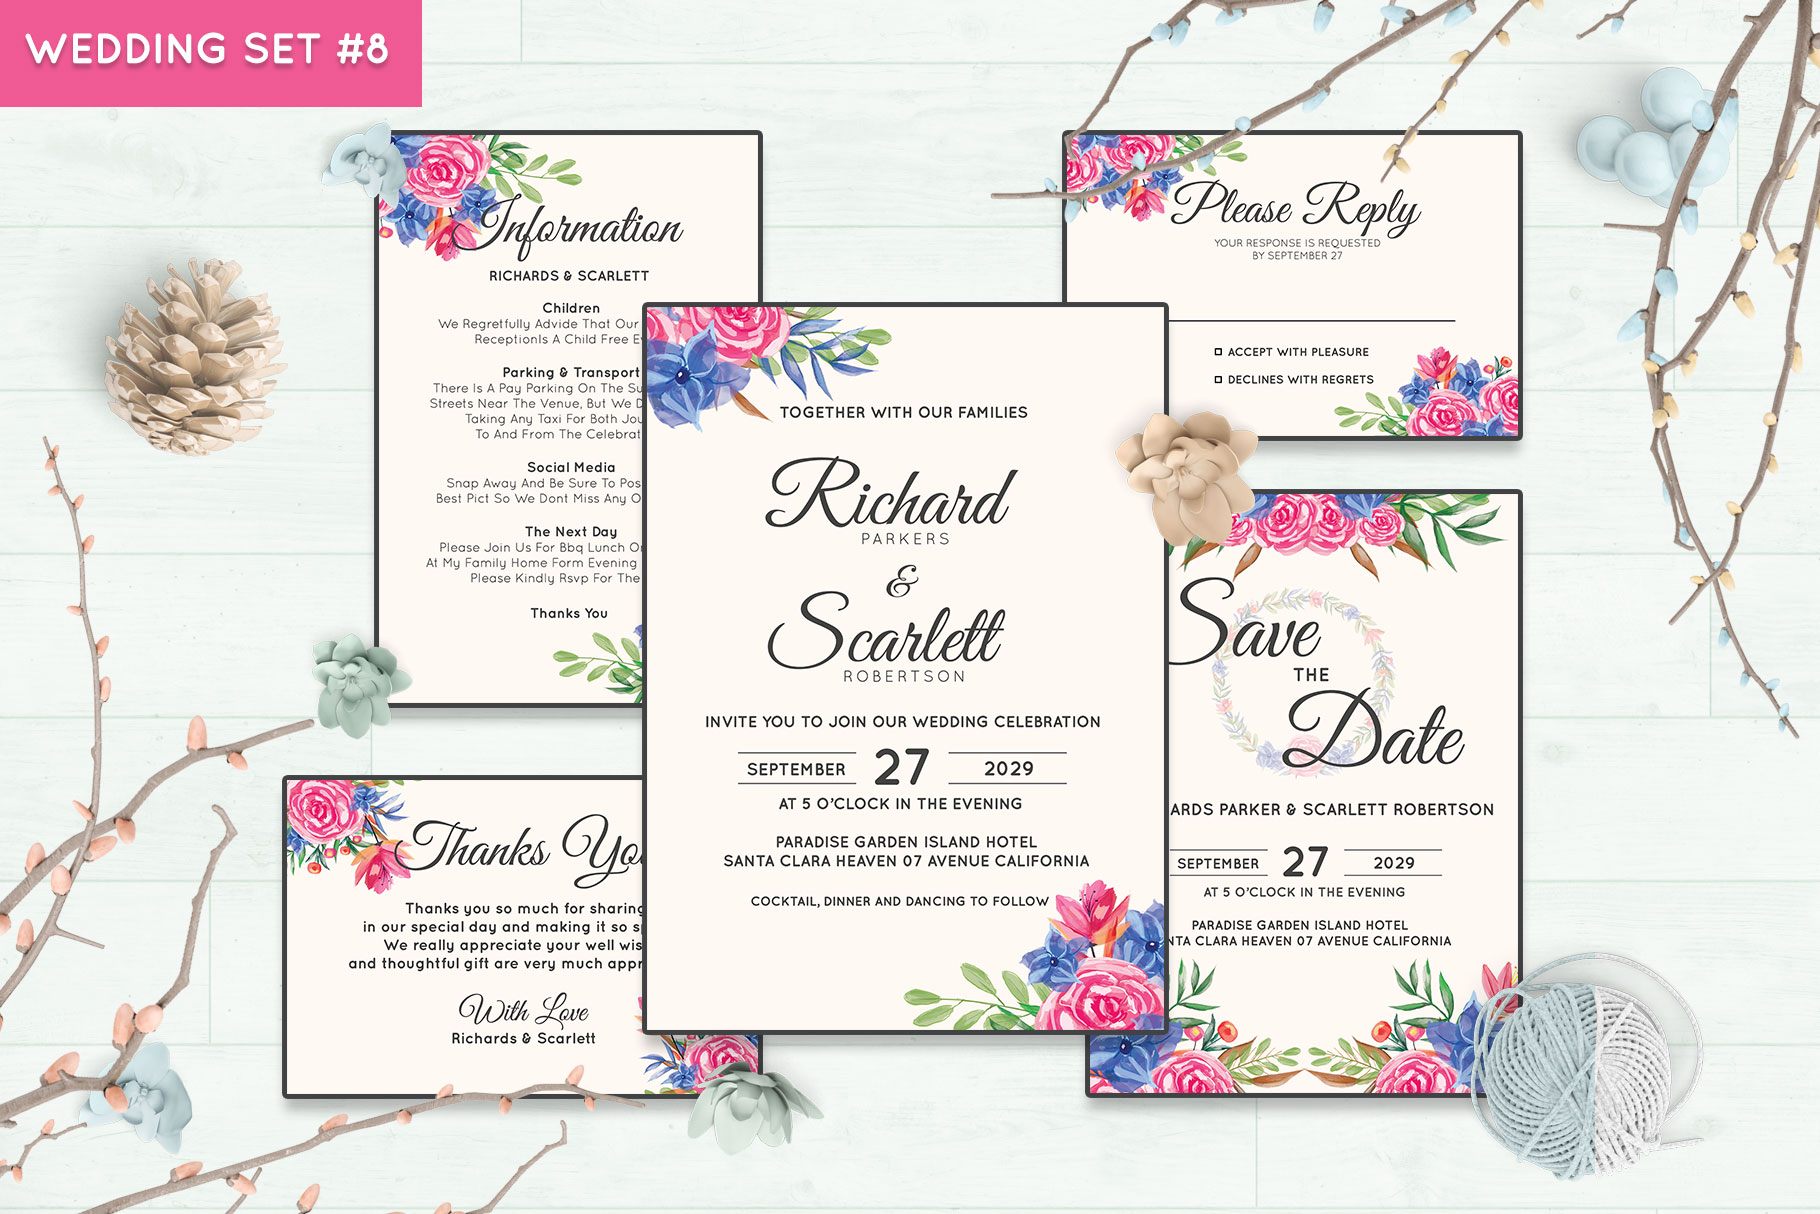 Wedding Invitation Set #8 Watercolor Floral Flower Style example image 1